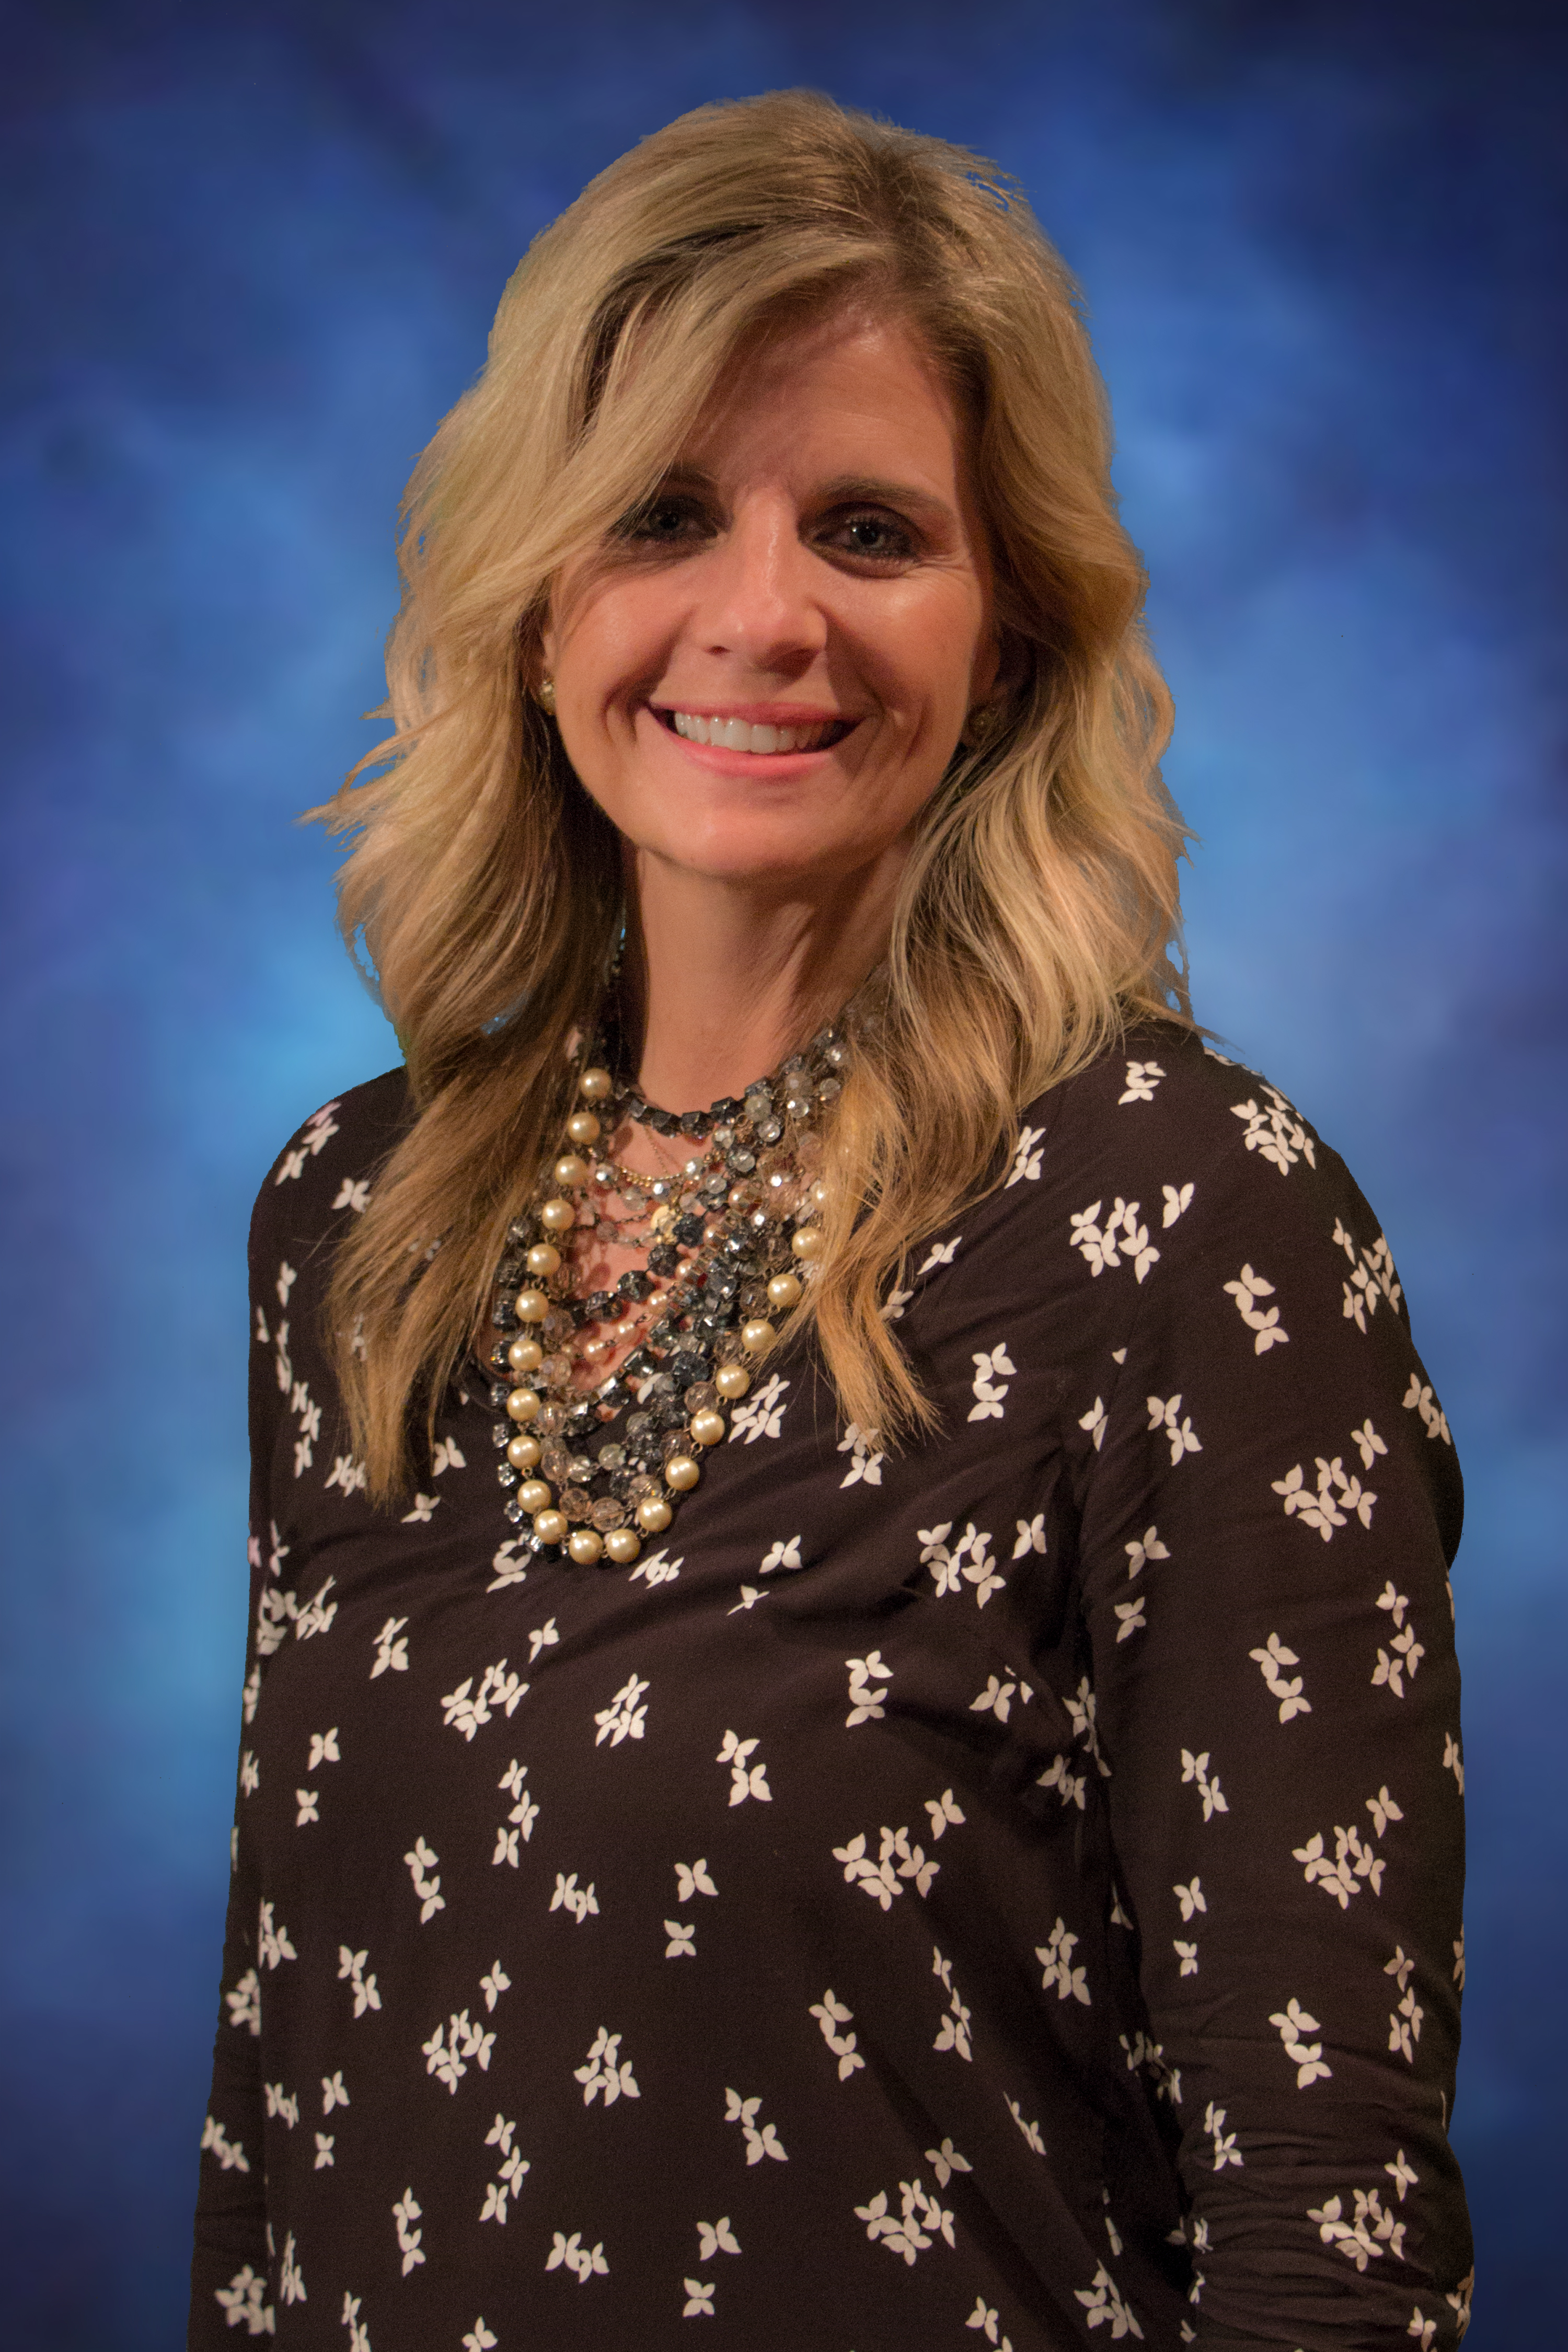 Tina Kalebick, County Line Elementary Campus Teacher of the Year 2017